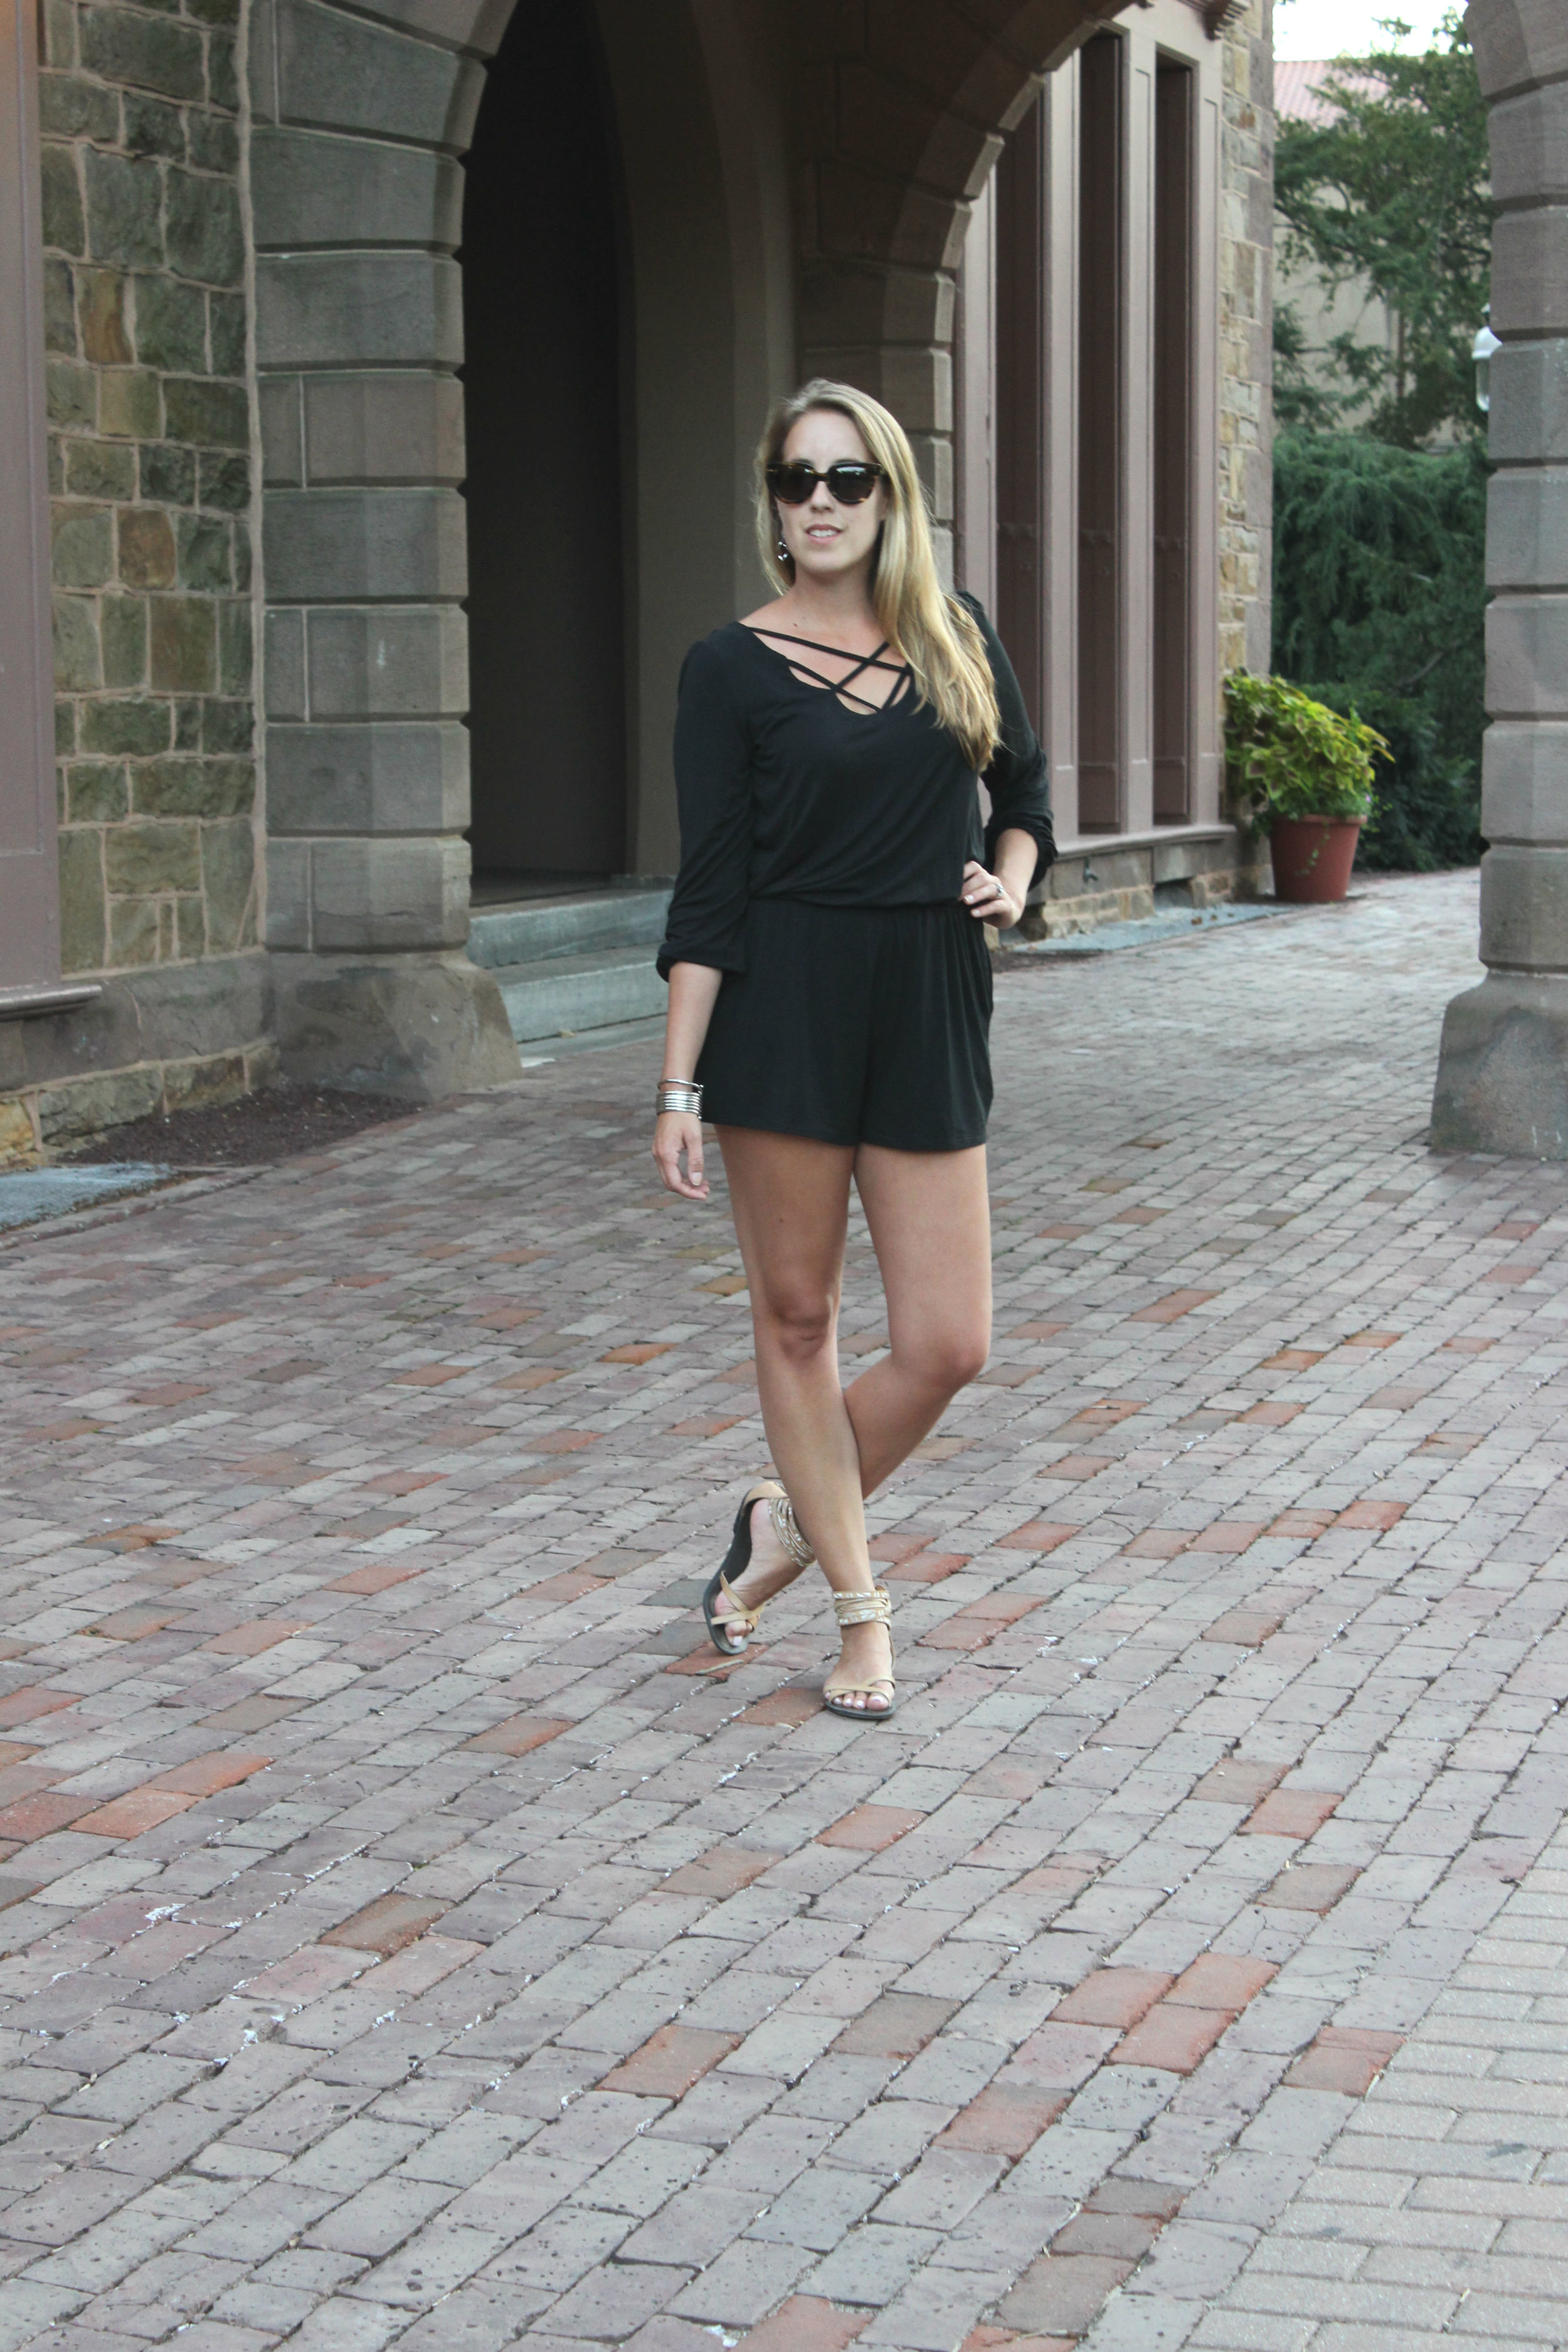 Wearing: Romper Around Town, Summer to Fall